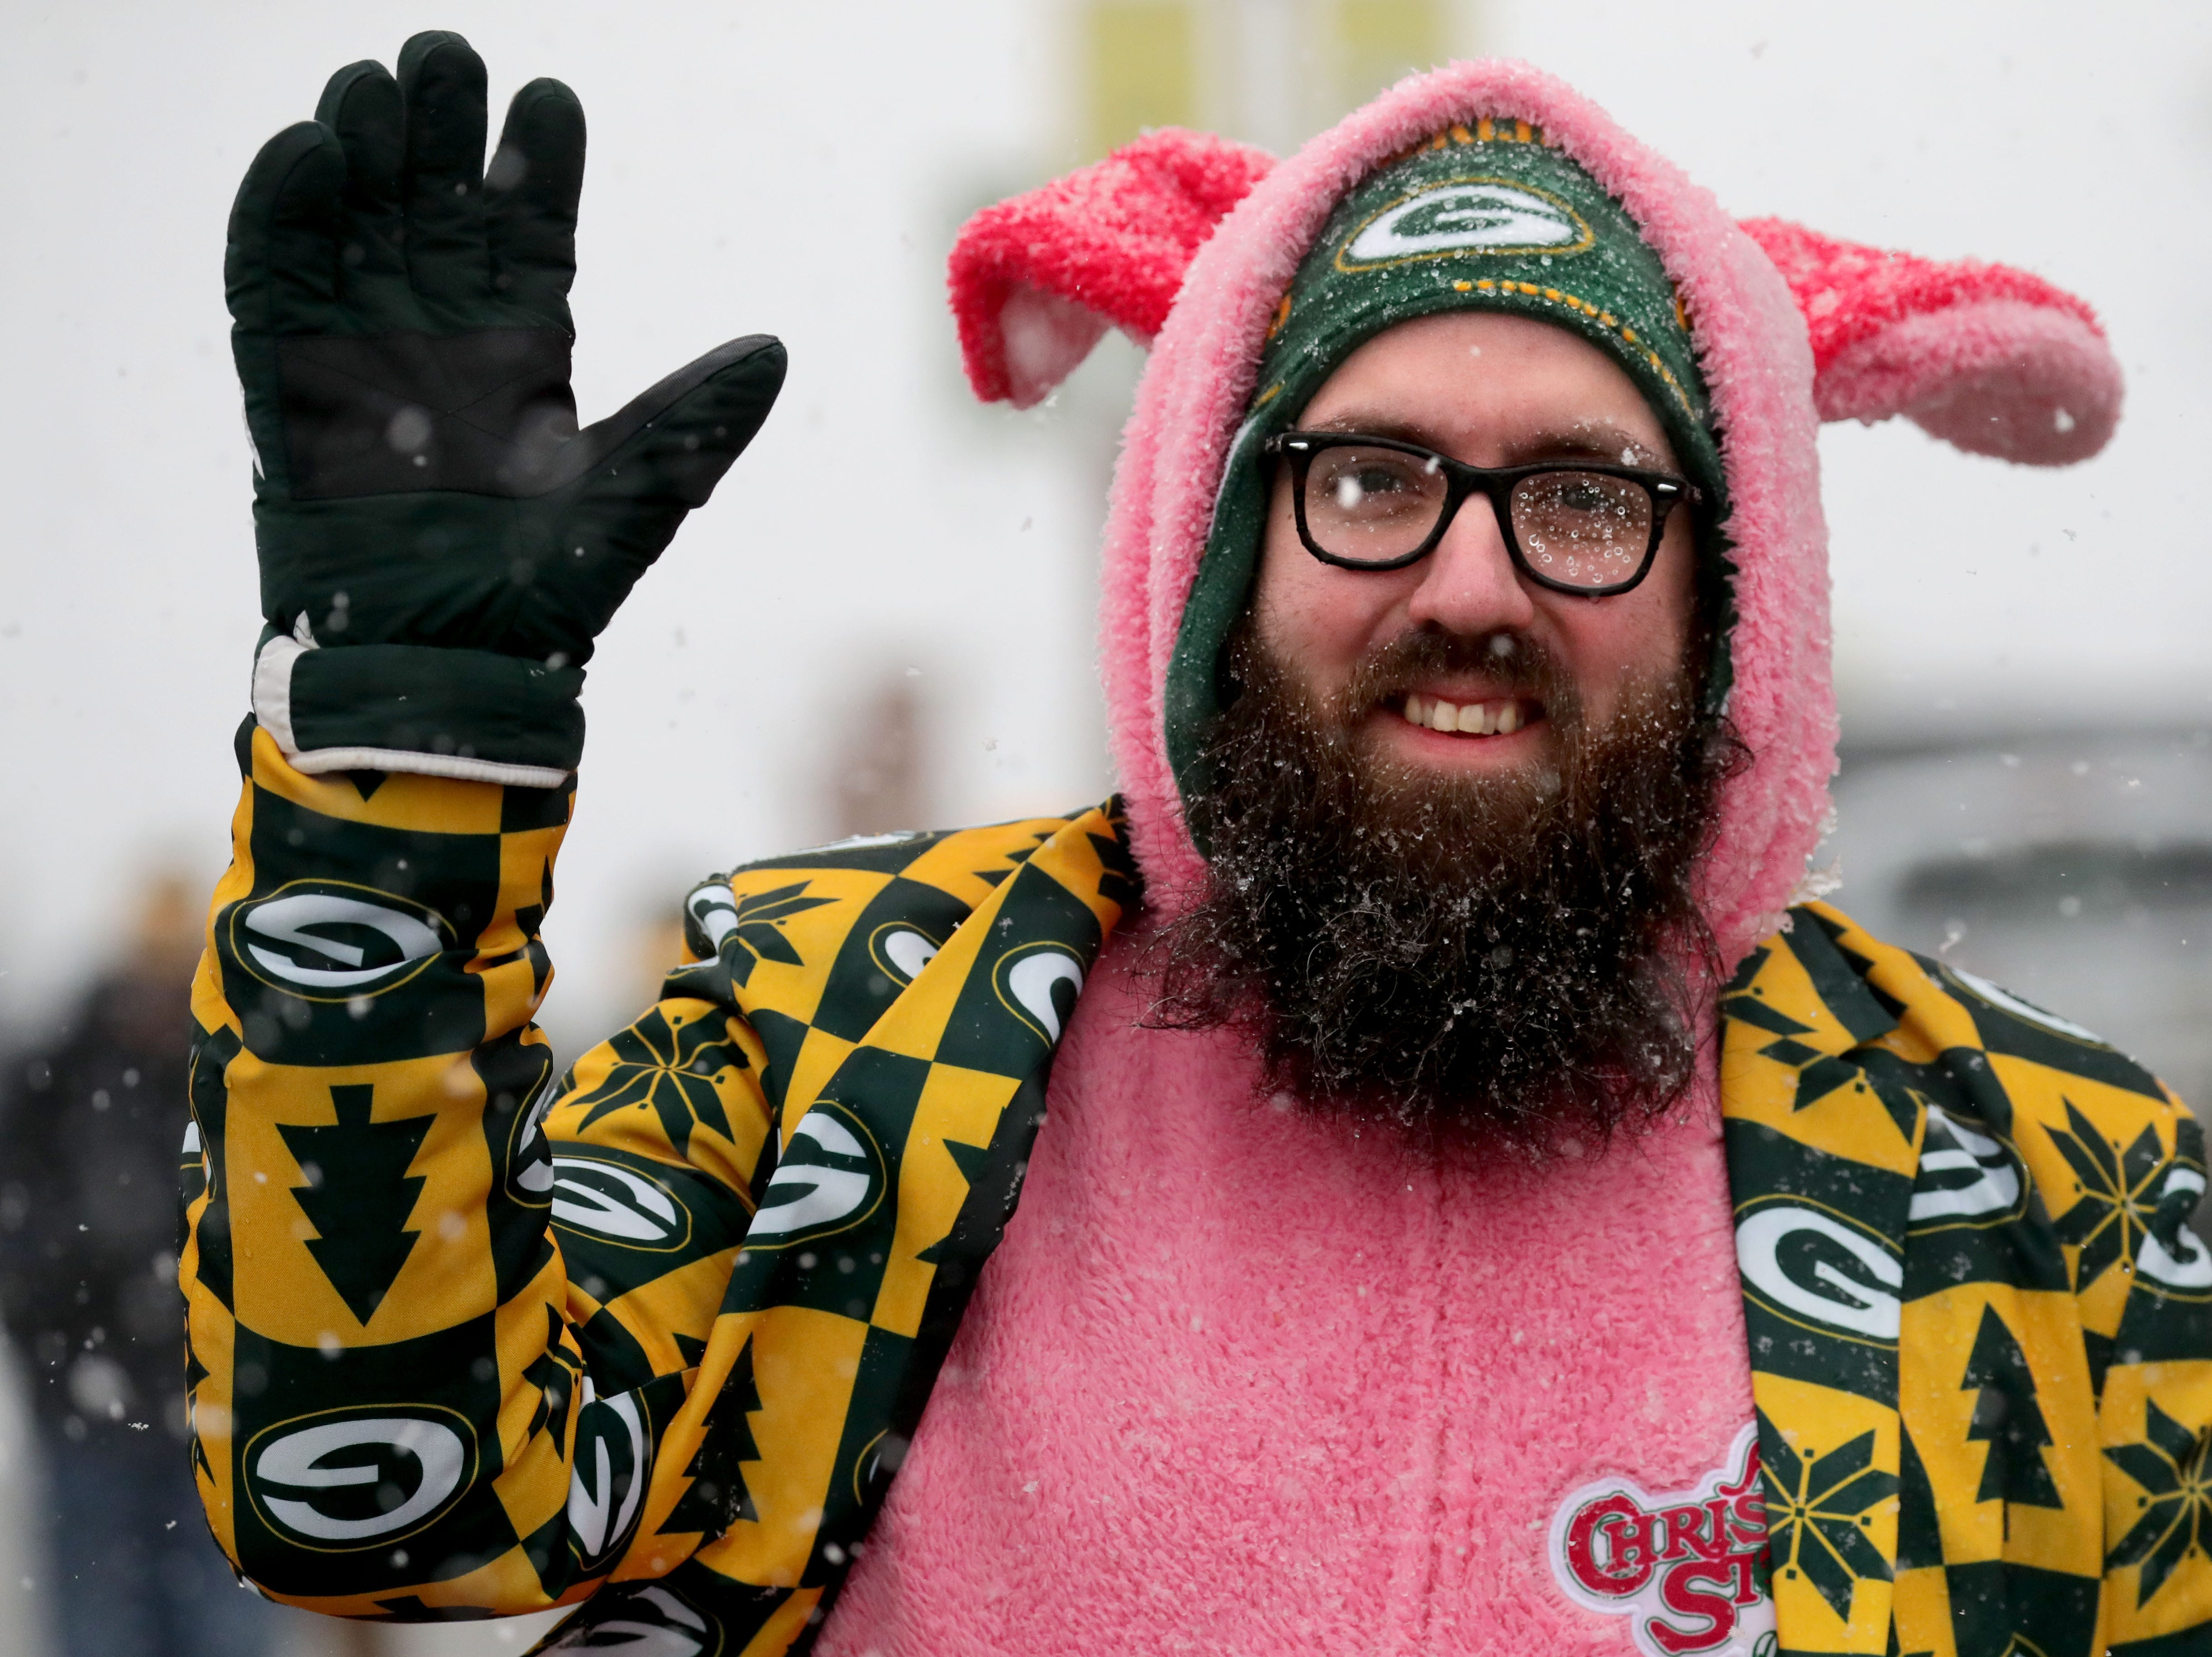 """Mike Goodman from Fort Wayne, Ind. waves as he's dressed as Ralphie's bunny costume from the movie """"A Christmas Story"""" while tailgating before the Green Bay Packers game against the Arizona Cardinals at Lambeau Field in Green Bay, Wis. on Sunday, December 2, 2018."""